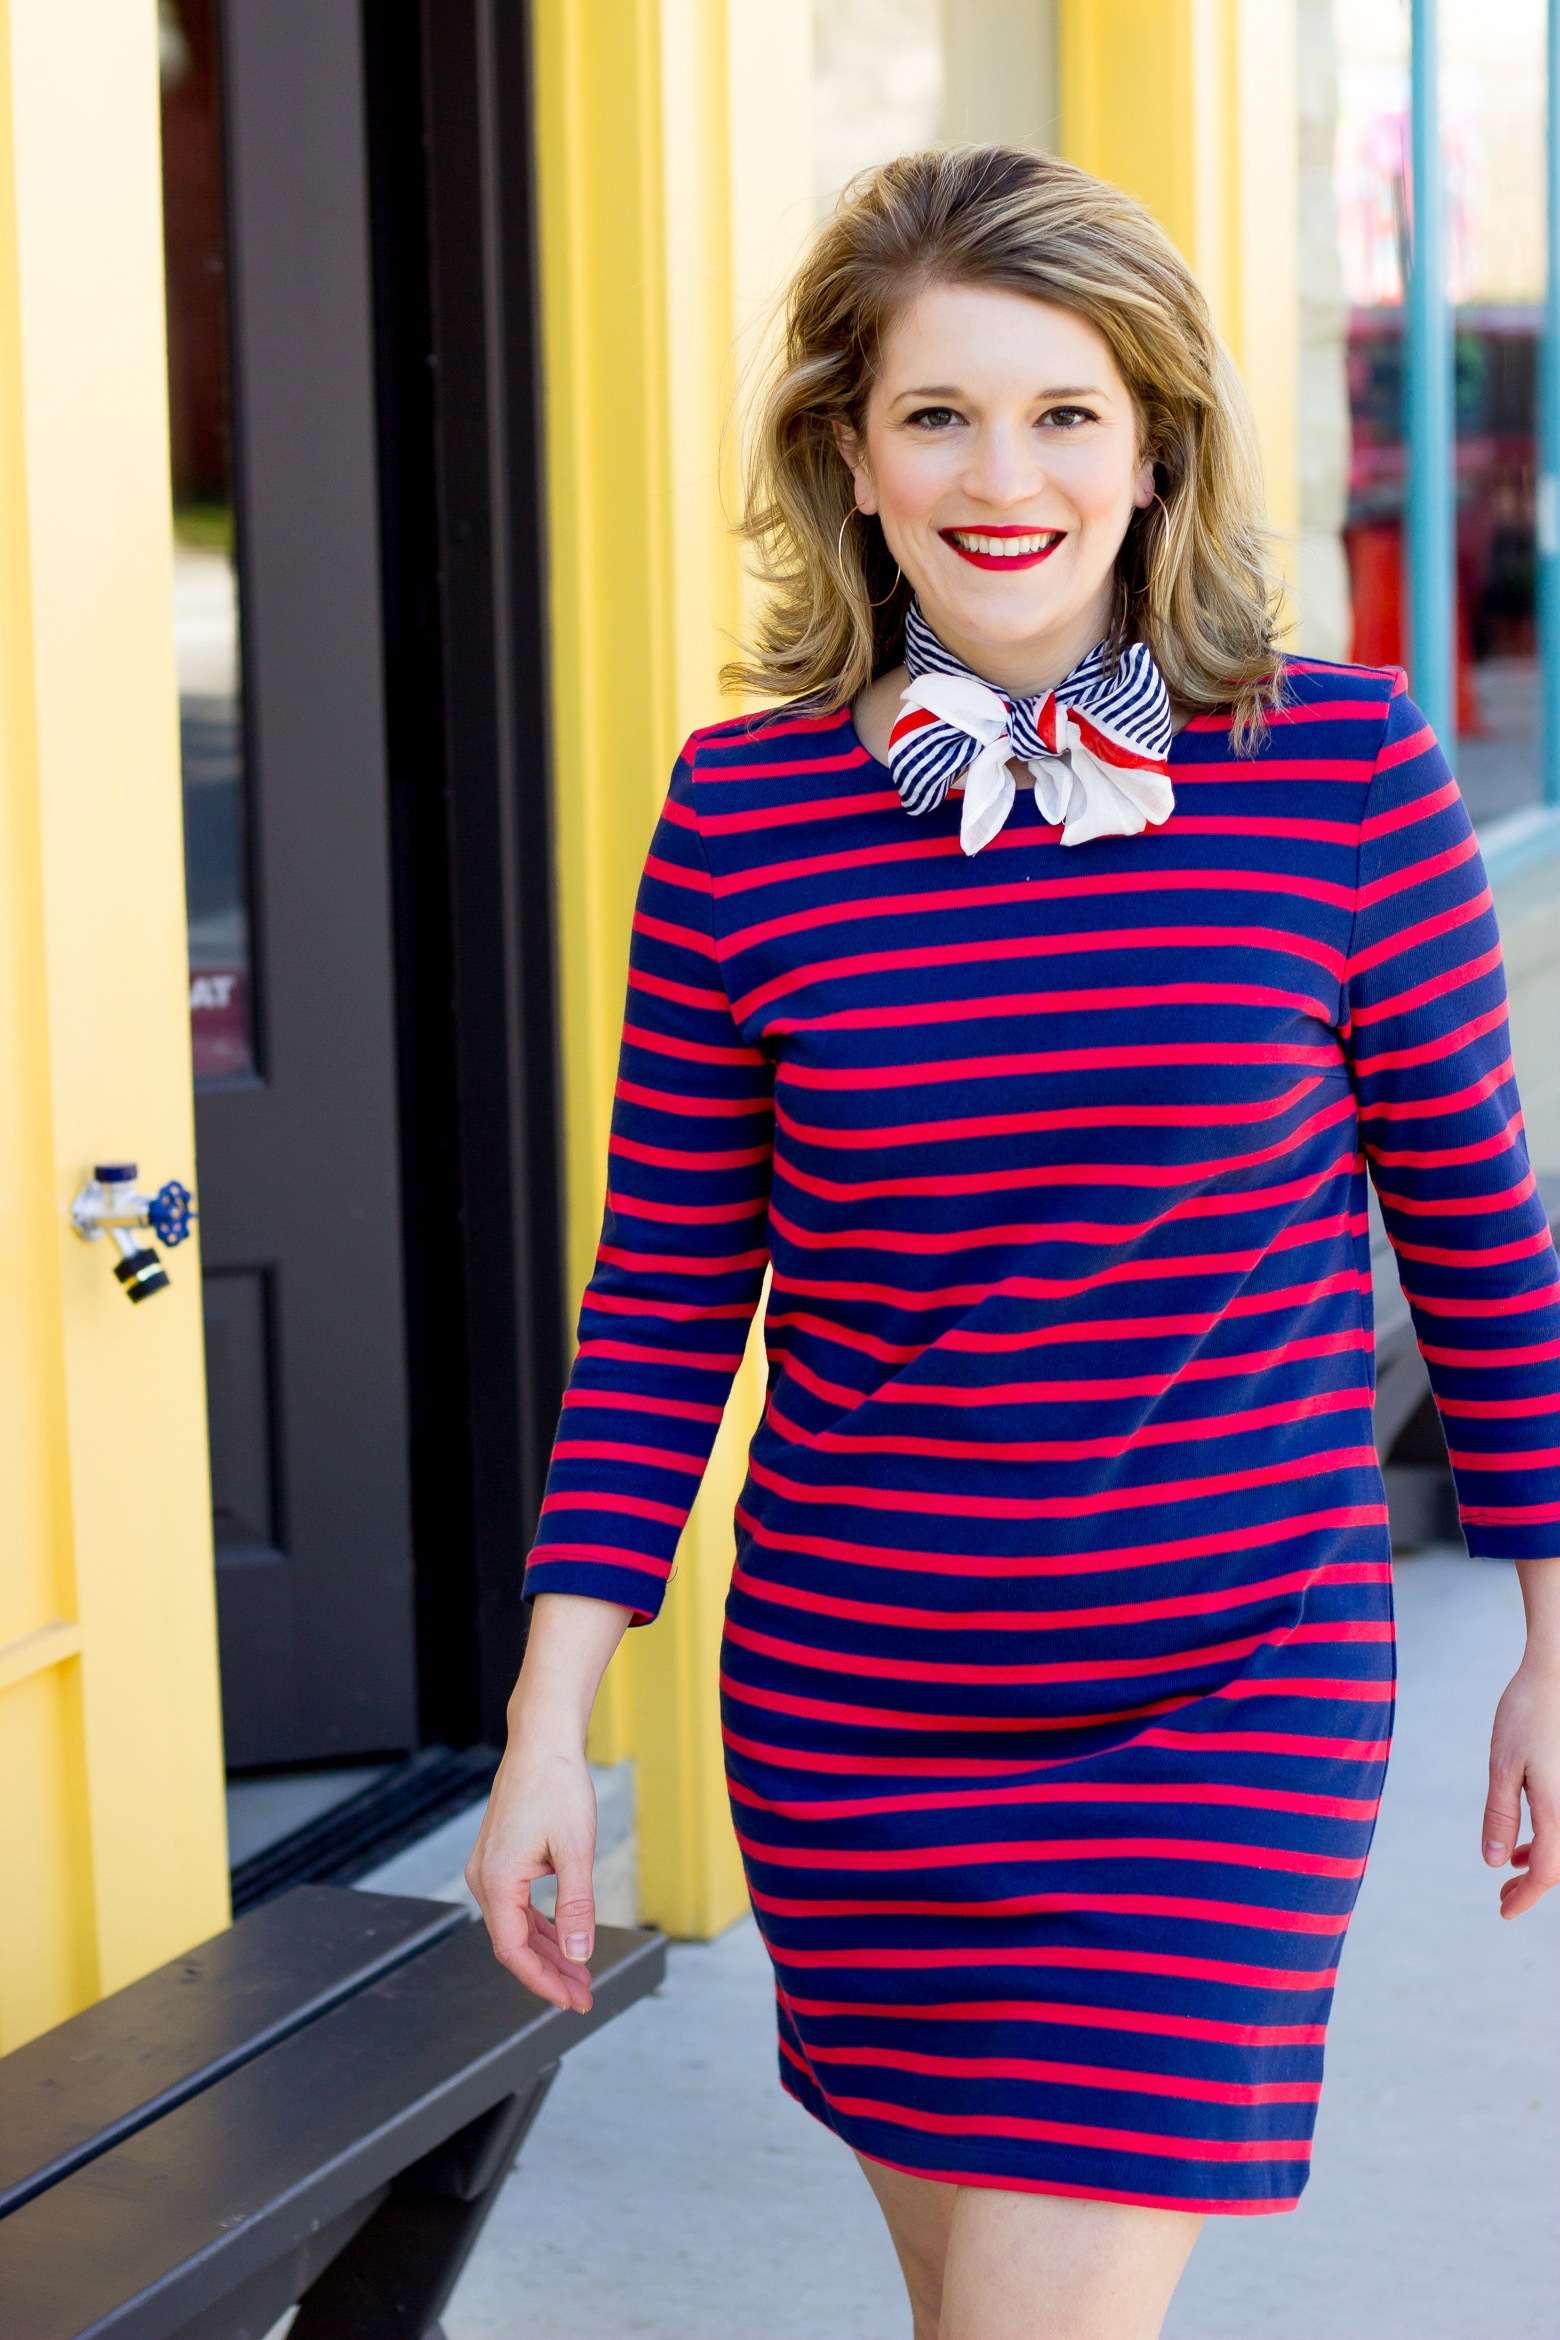 Nautical style from Old Navy on Belle Meets World blog